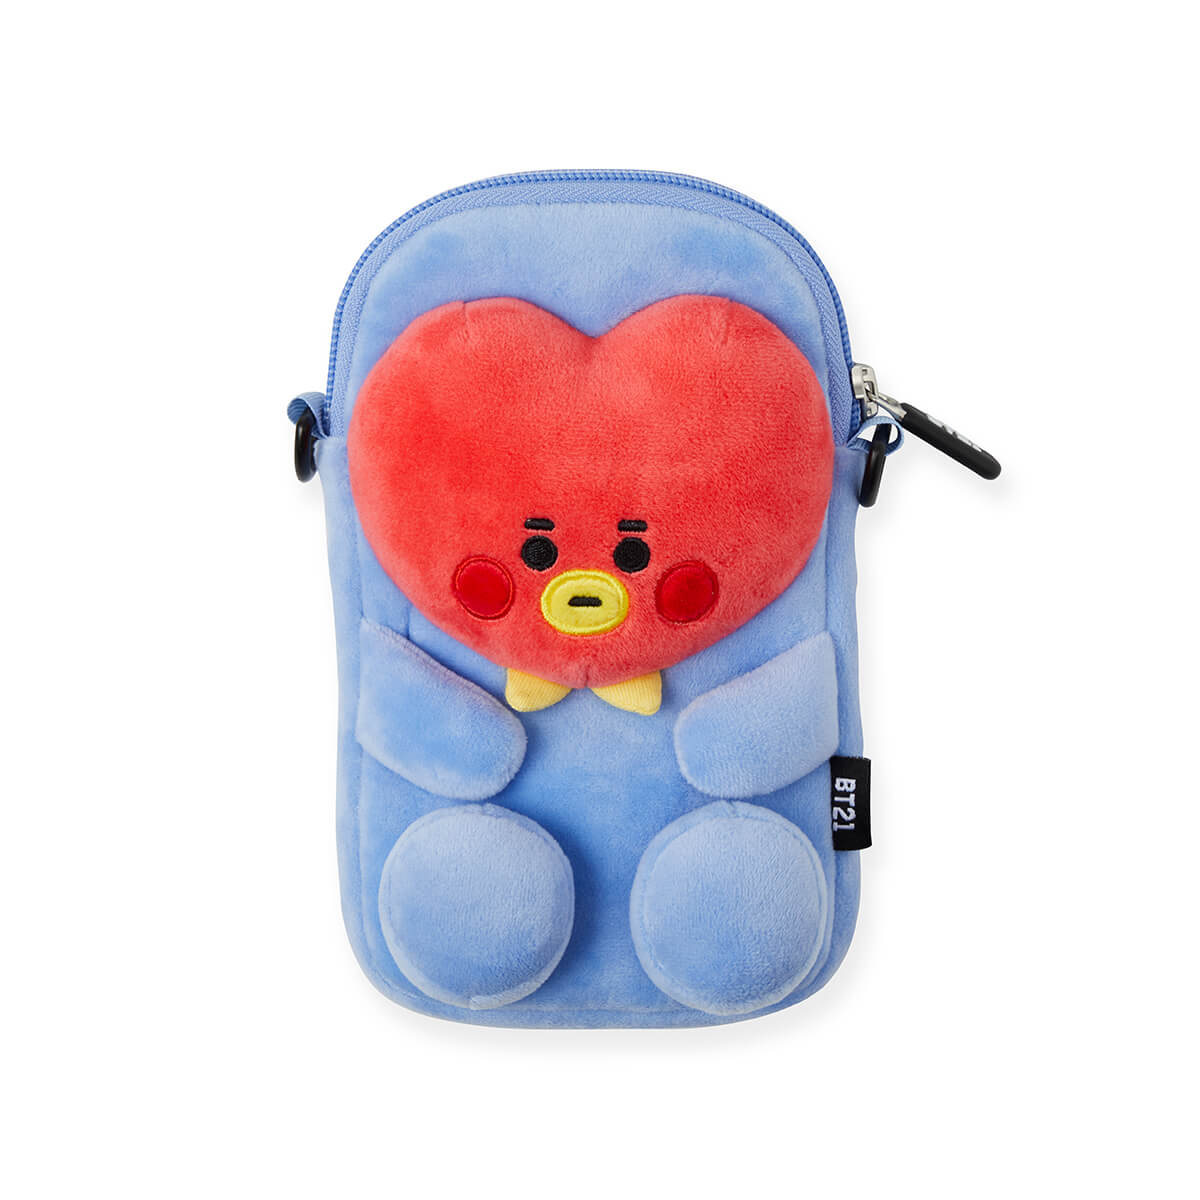 BT21 TATA Baby Plush Cross Bag